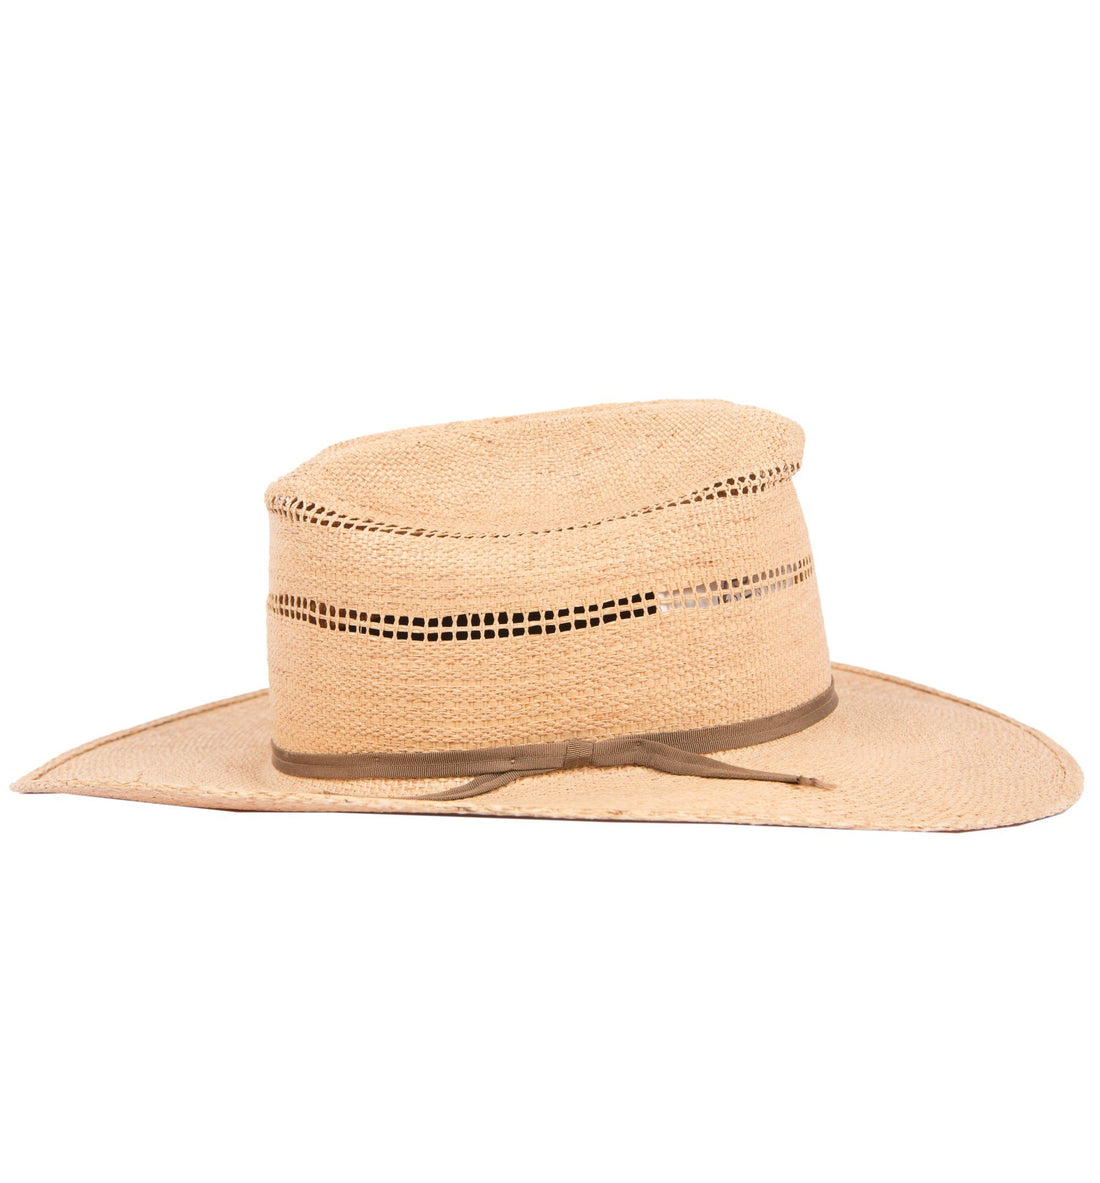 d94c97dc ... Vintage Straw Hat - Vintage - Iron and Resin ...